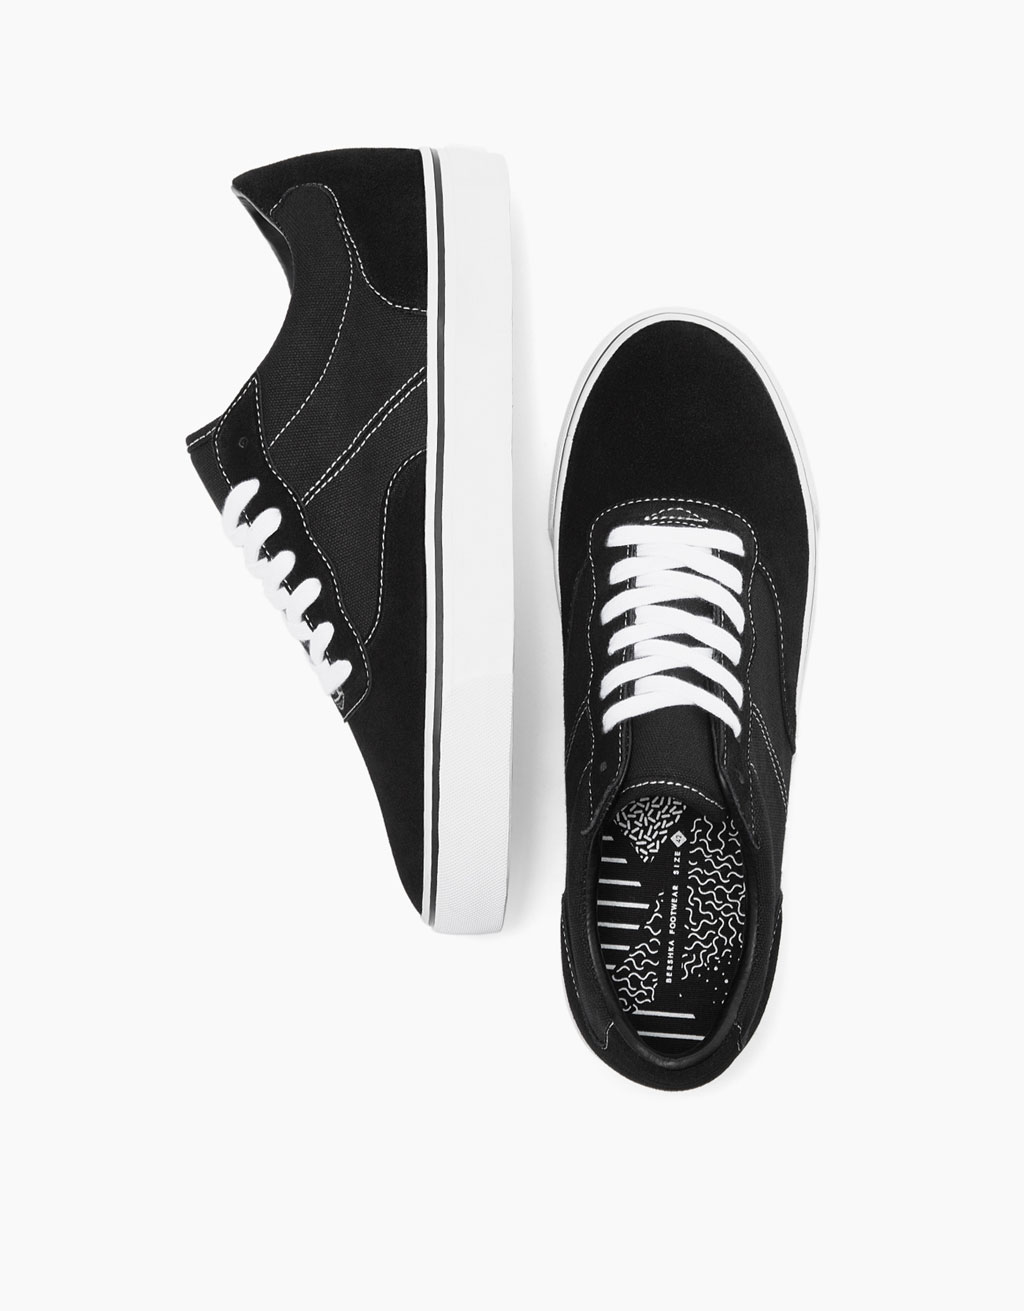 Men's topstitched lace-up sneakers